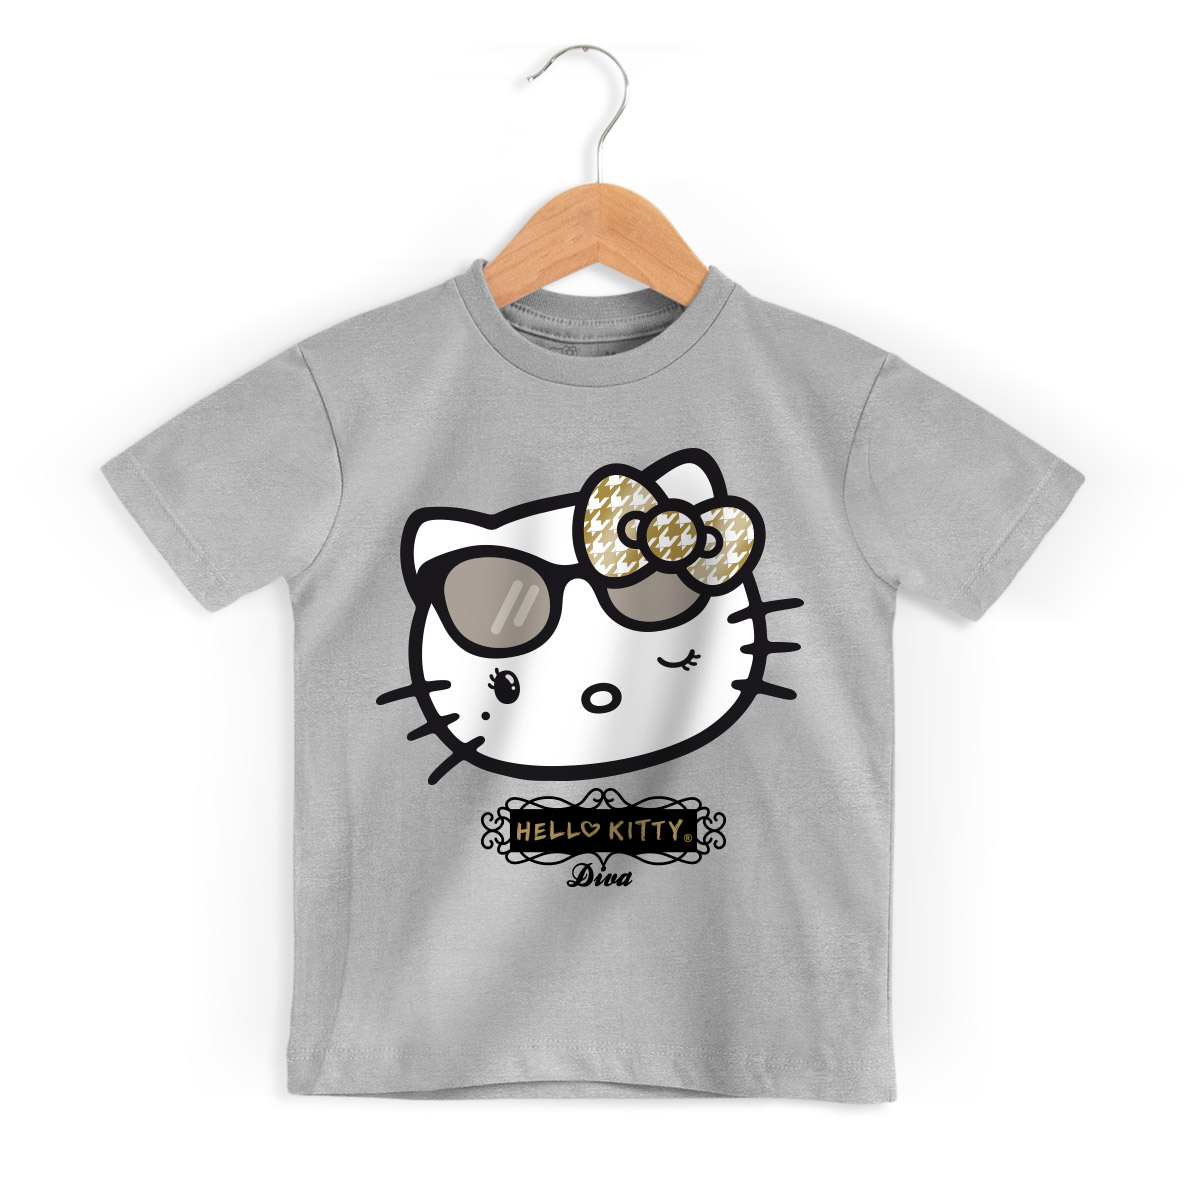 Camiseta Infantil Hello Kitty Diva